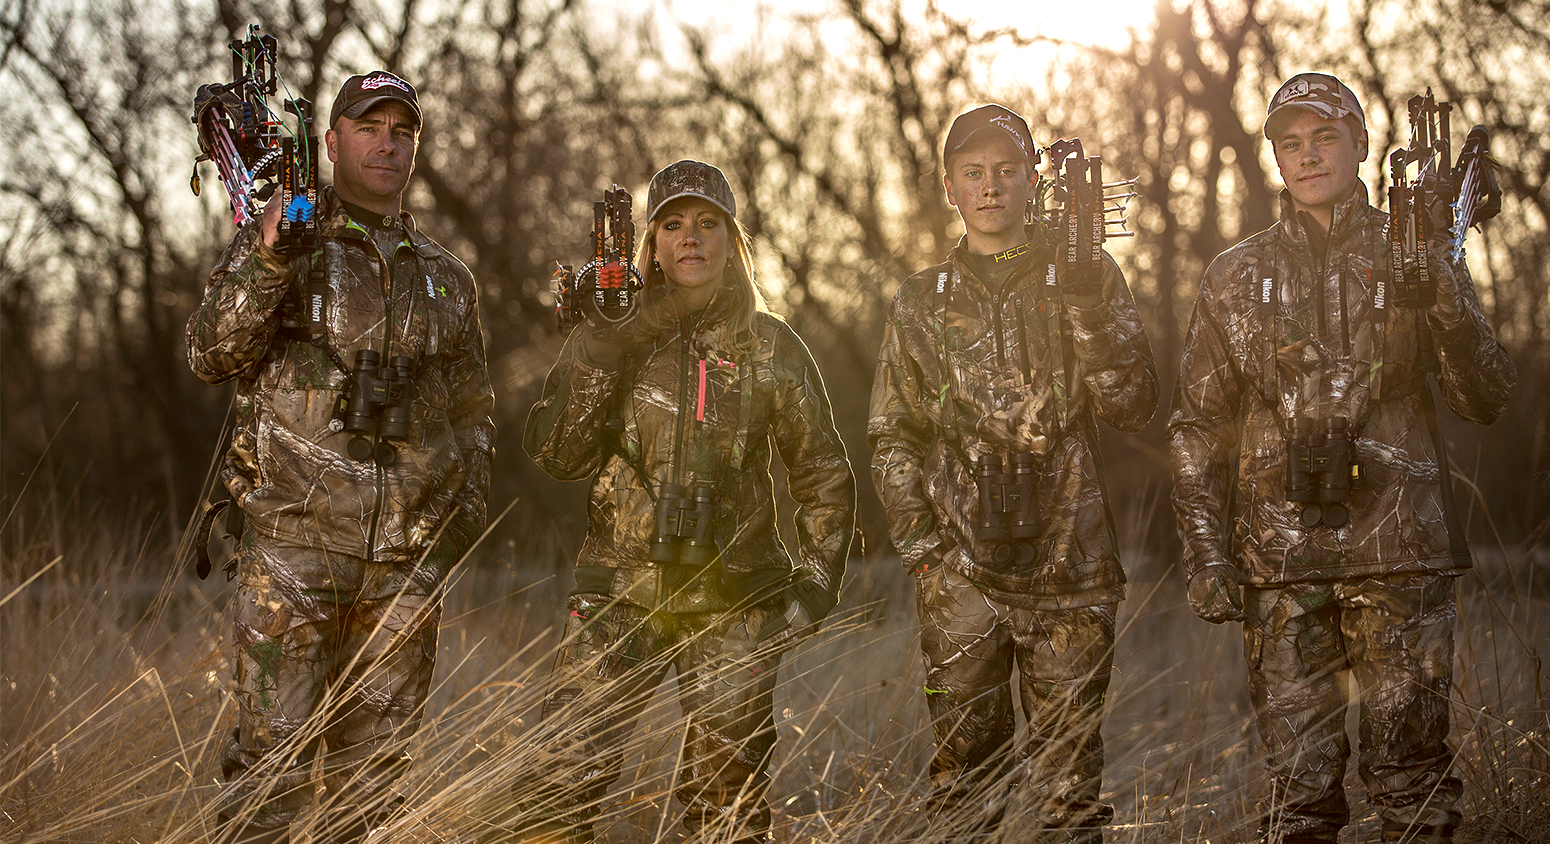 A Family Who Hunts Together, Stays Together